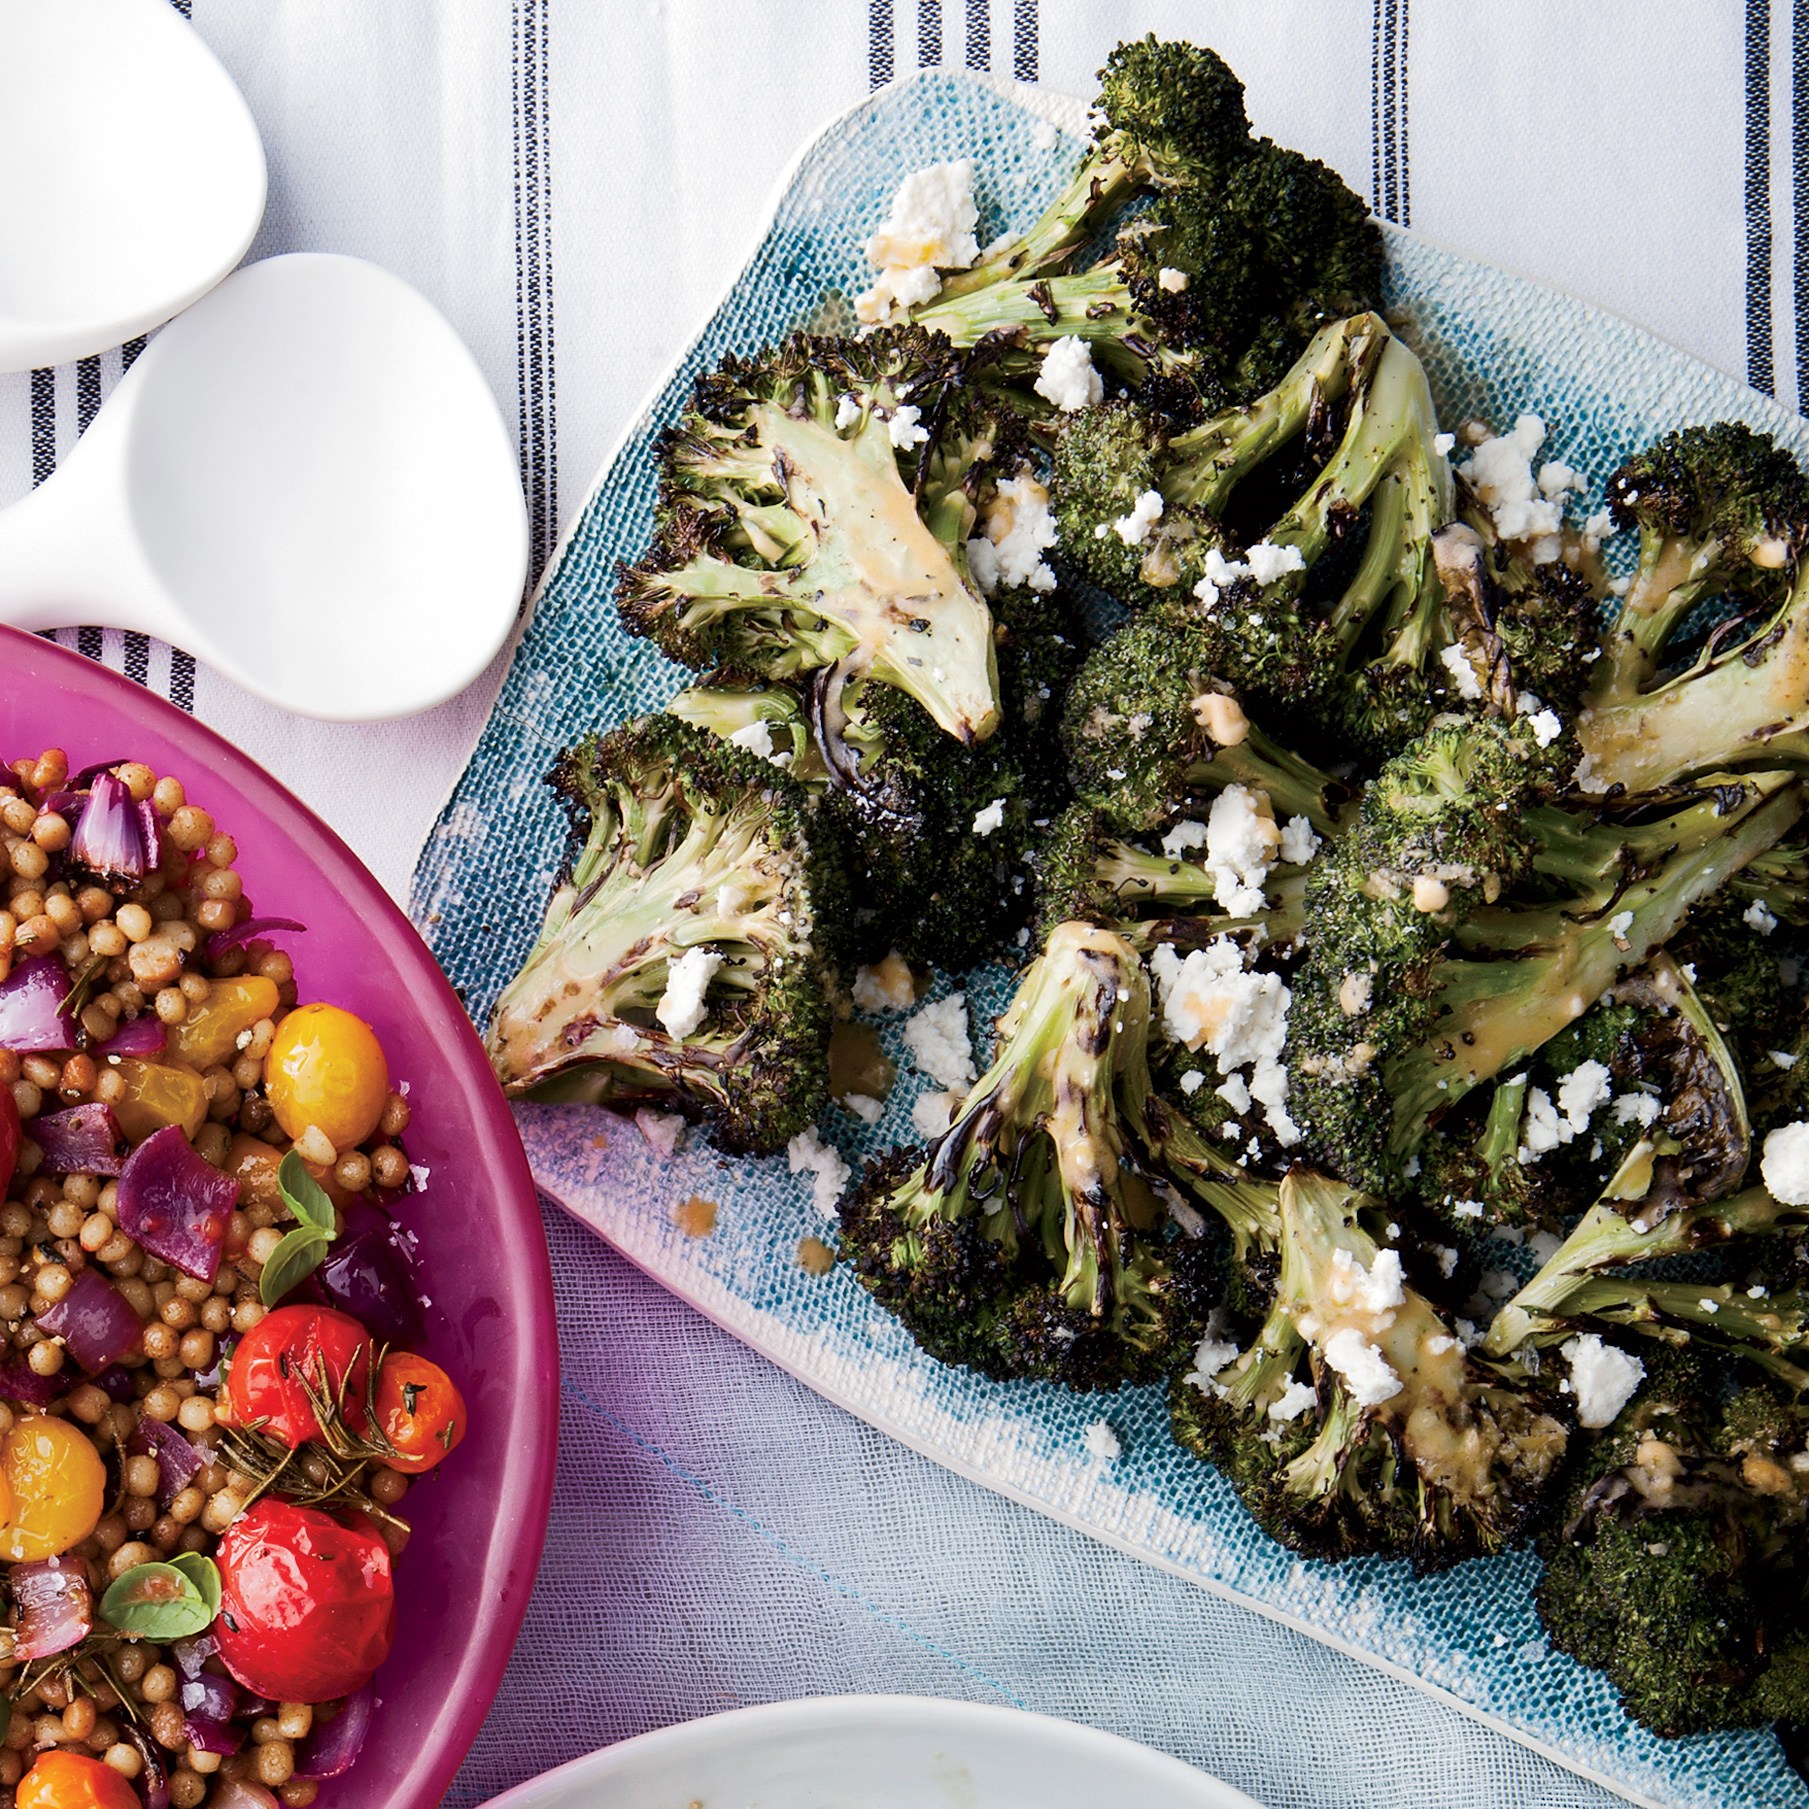 Grilled Broccoli with Chipotle-Lime Butter and Queso Fresco